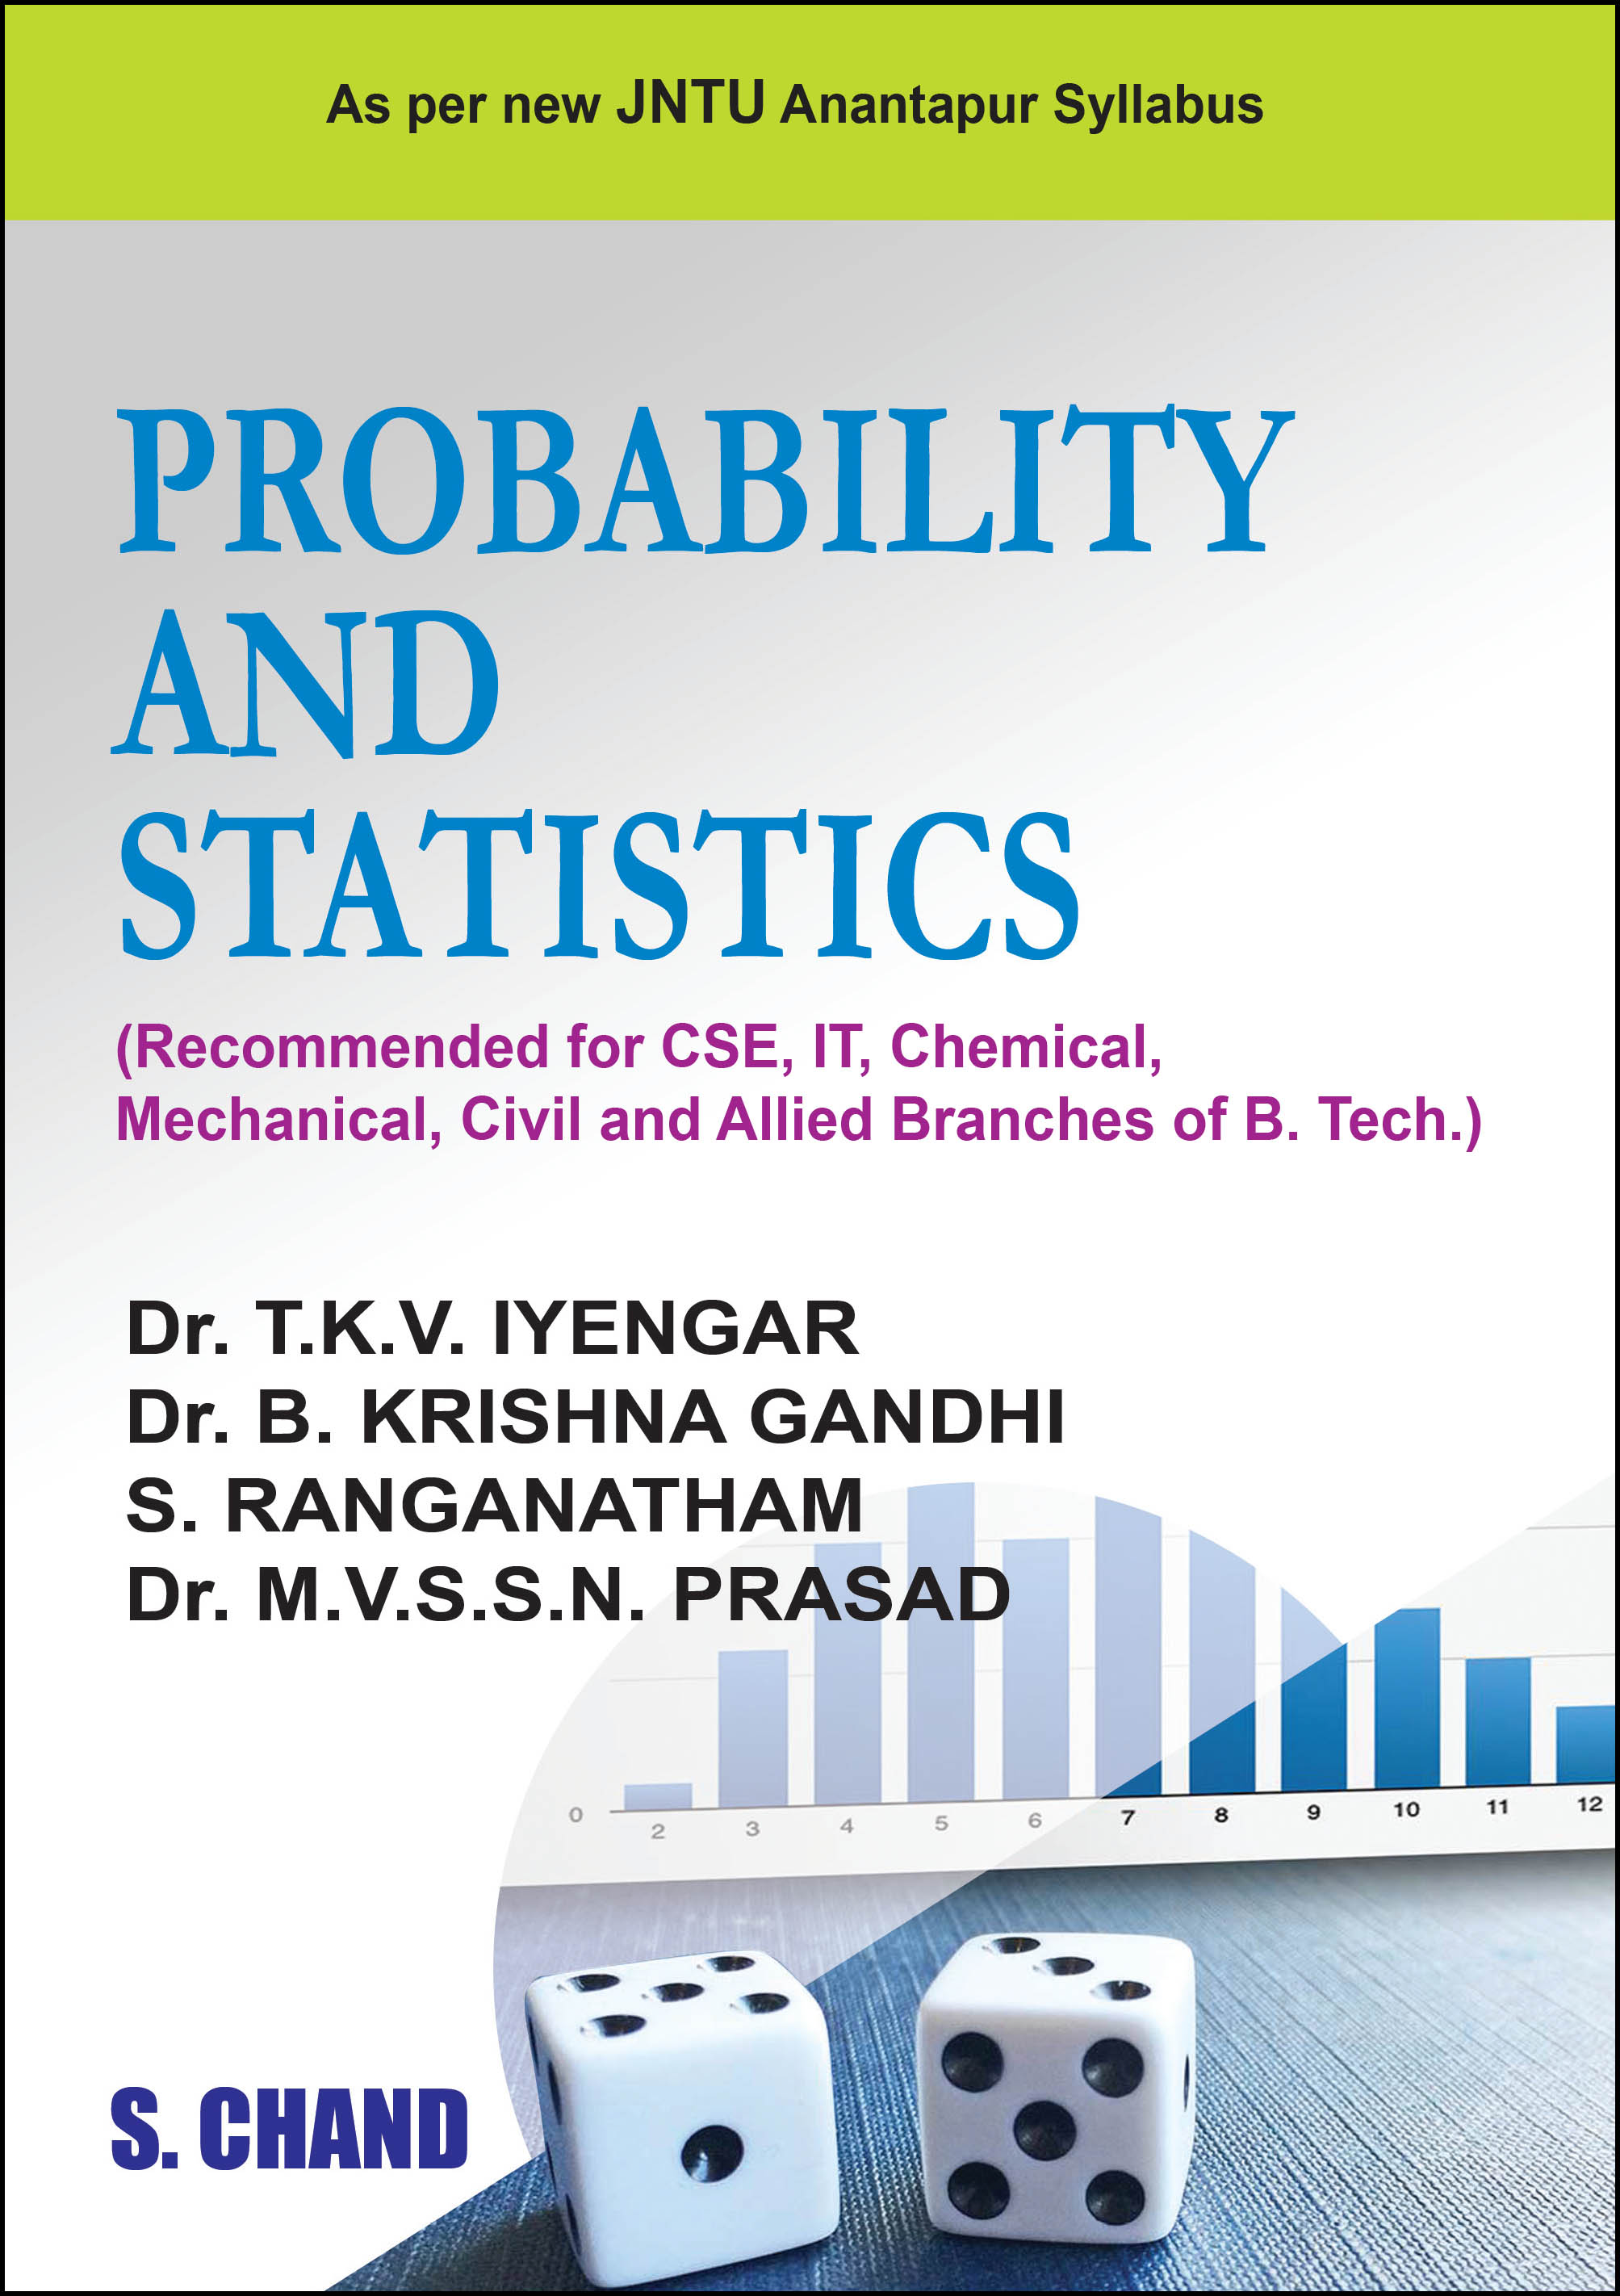 Probability And Statistics By Dr T K V Iyengar